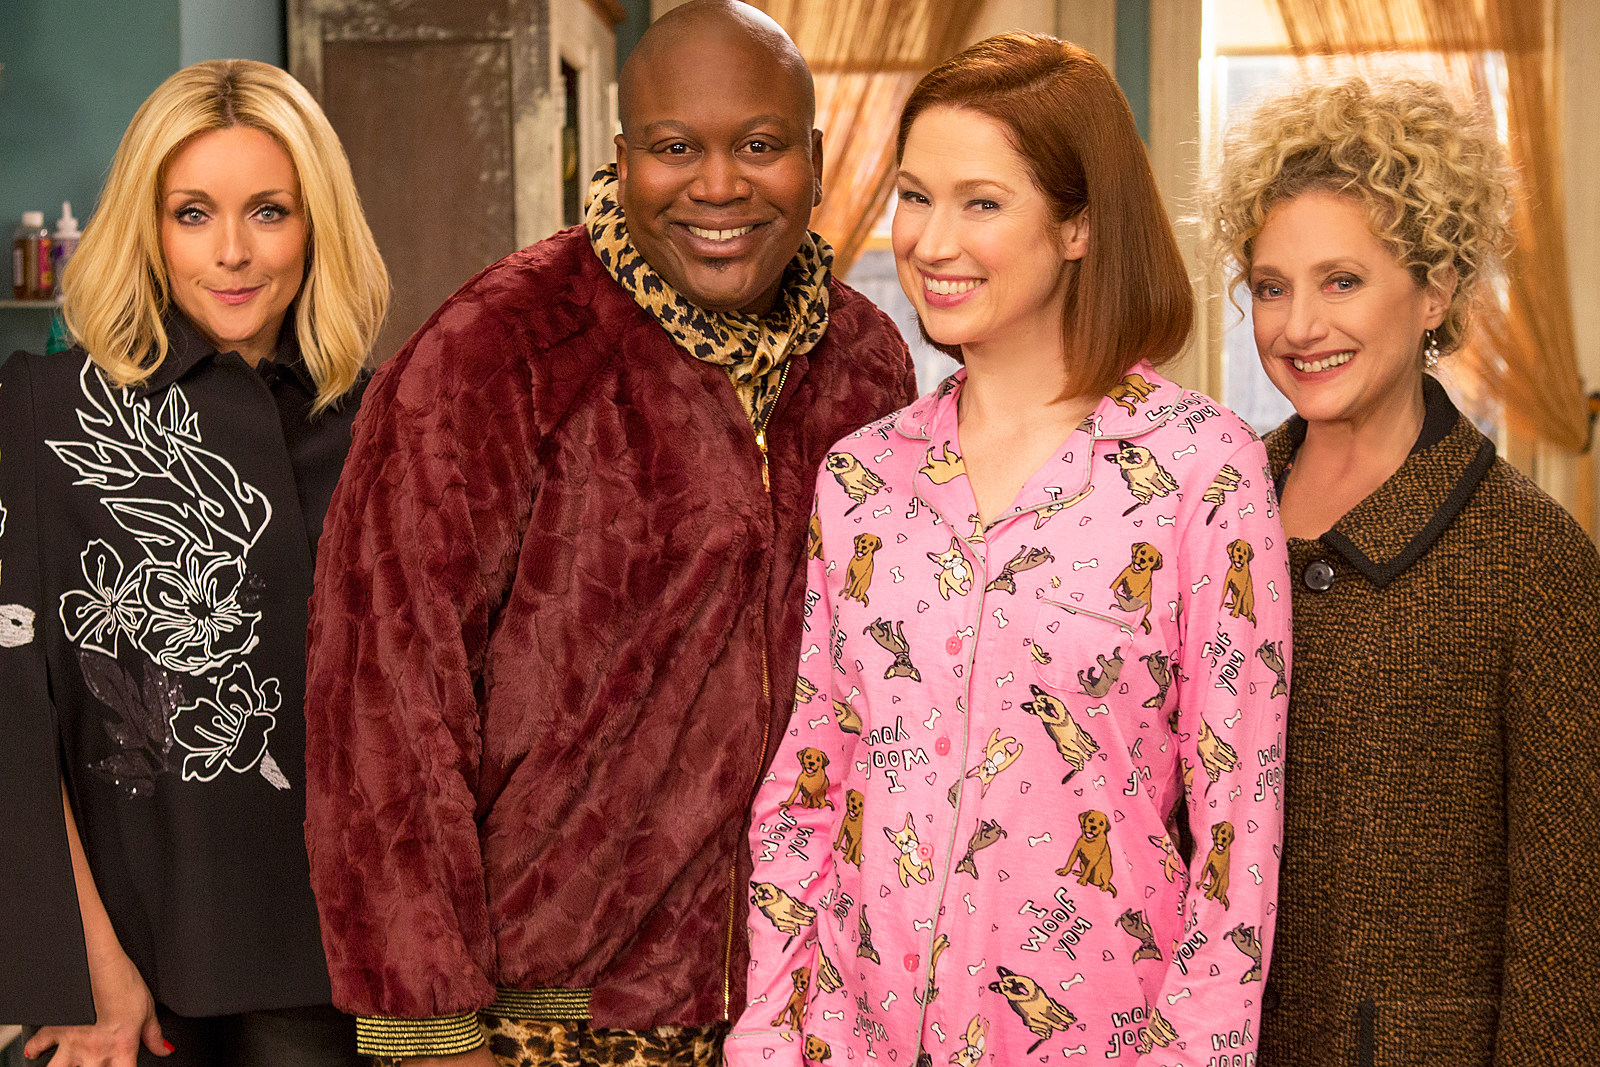 Amy Sedaris Kimmy Schmidt unbreakable kimmy schmidt' renewed for season 4 in 2018